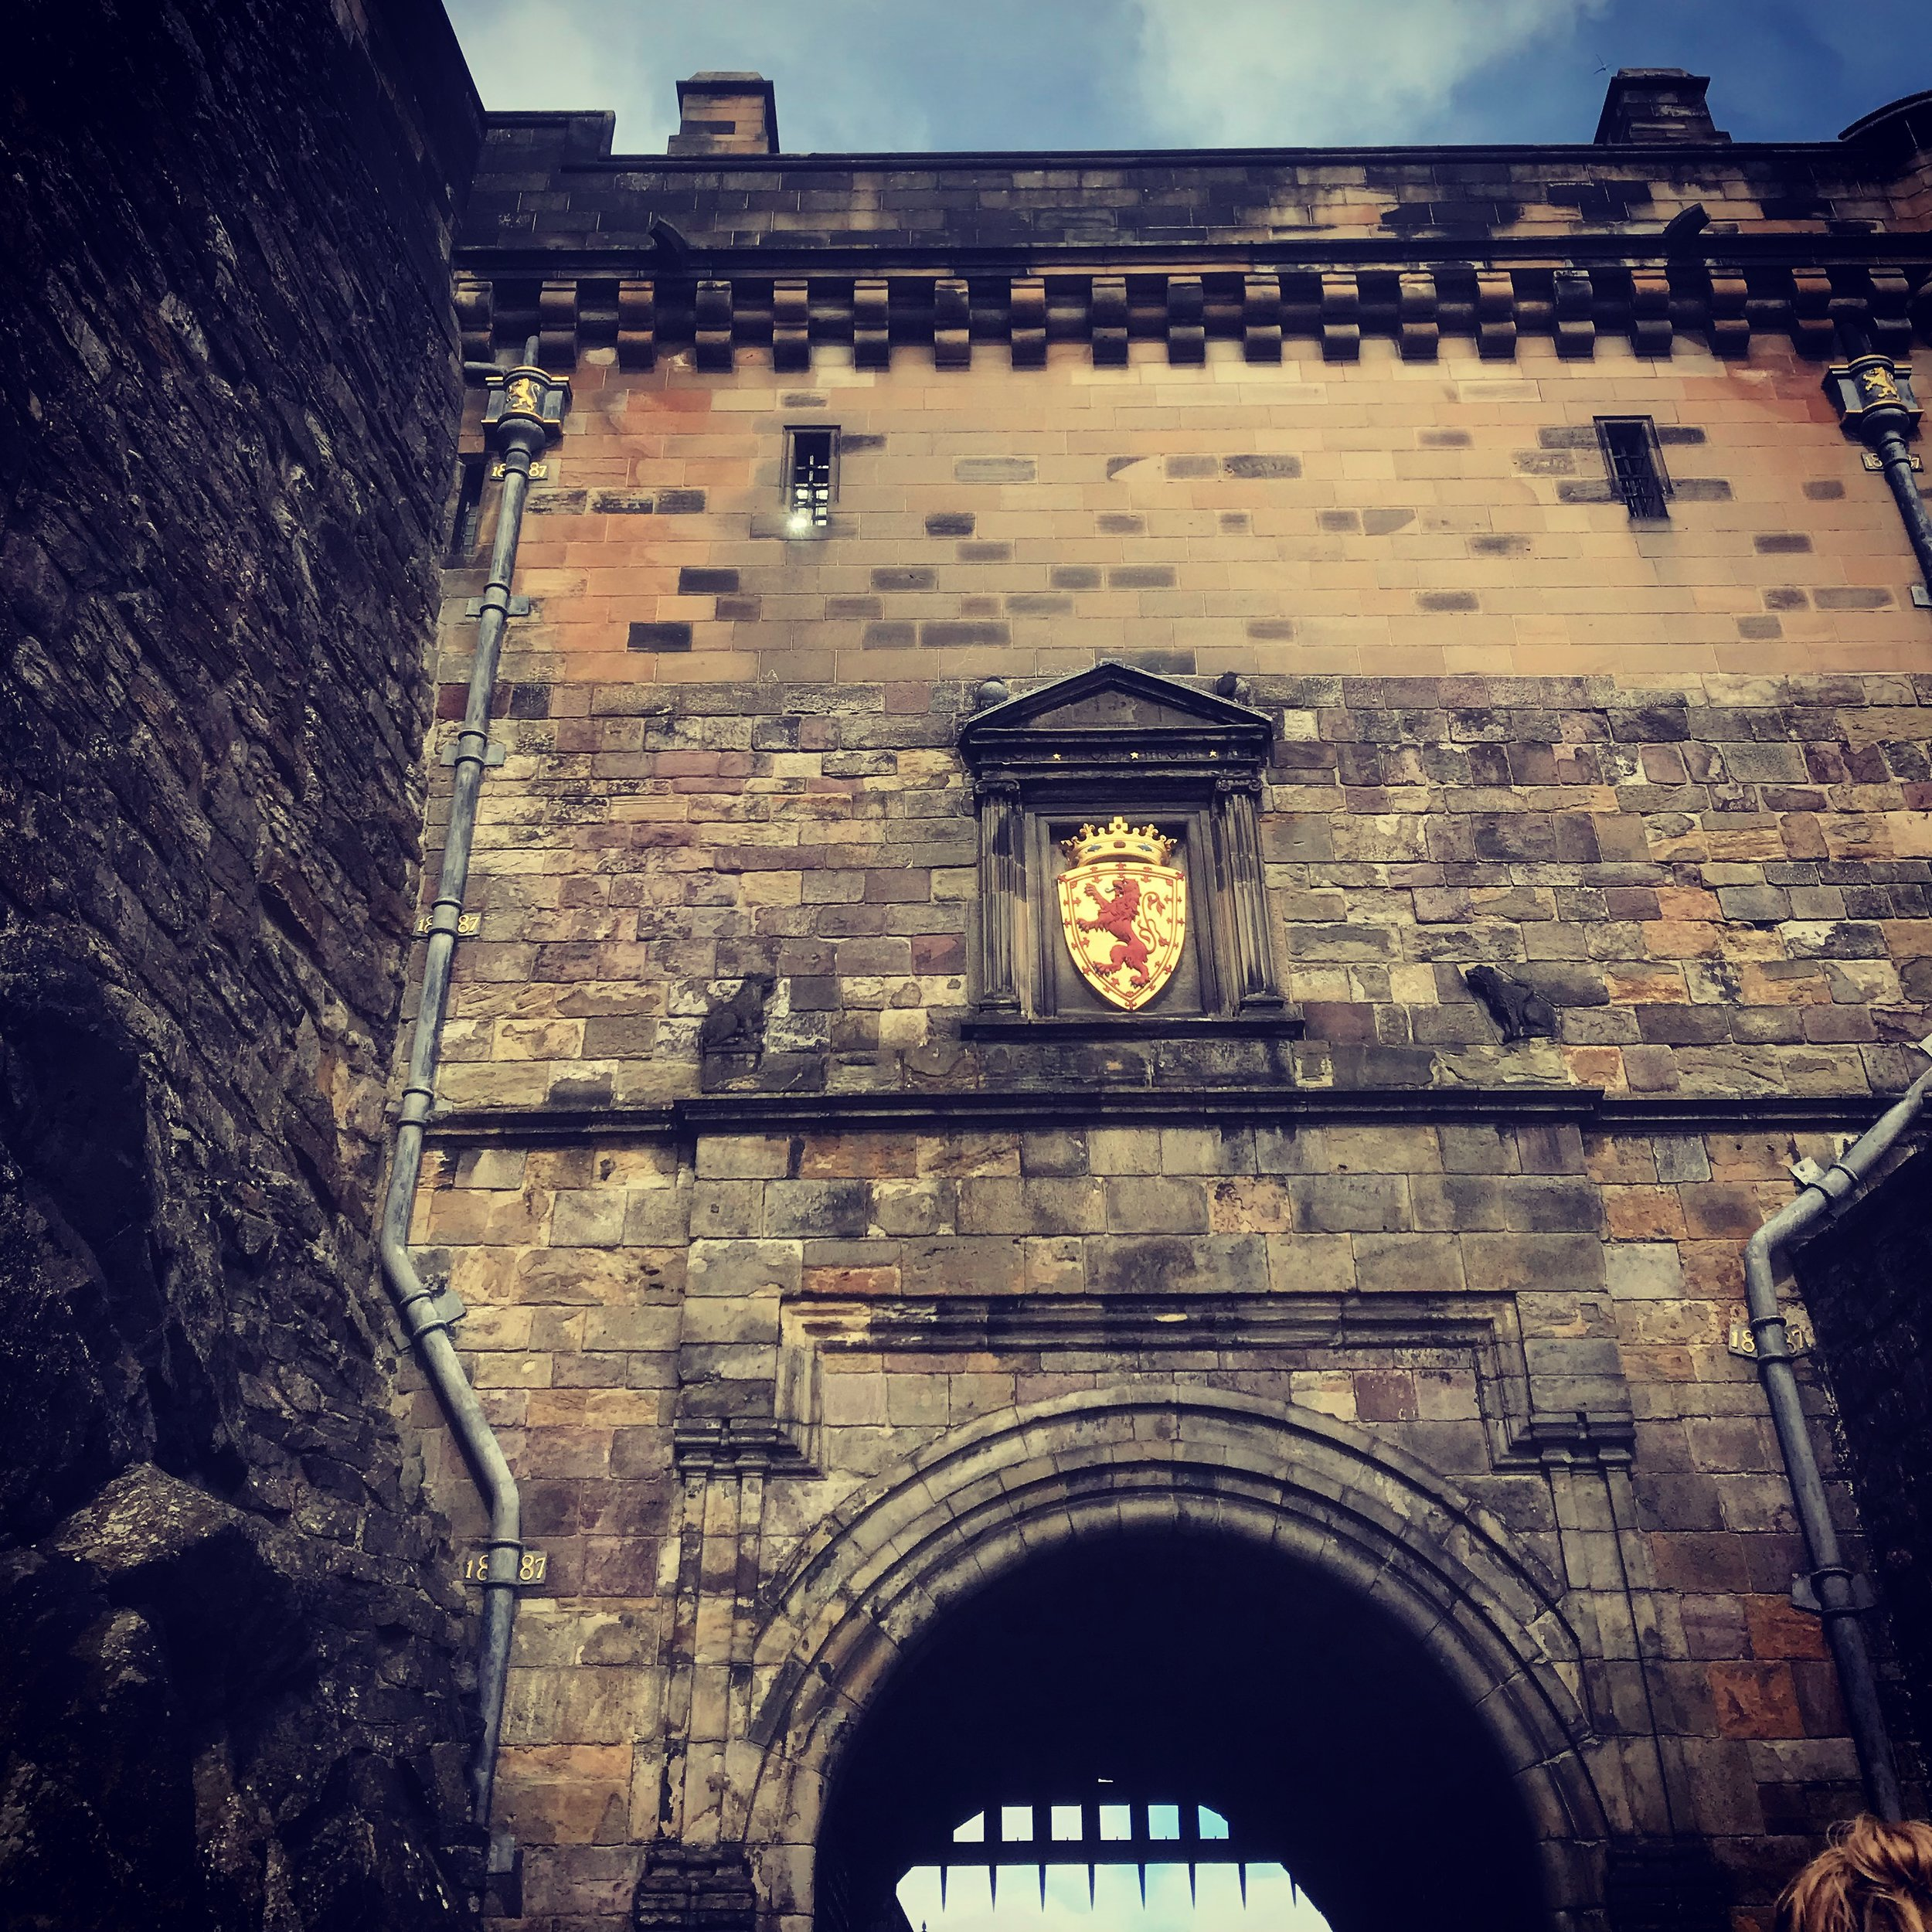 edinburgh-city-guide-foodie-scotland-harry-potter